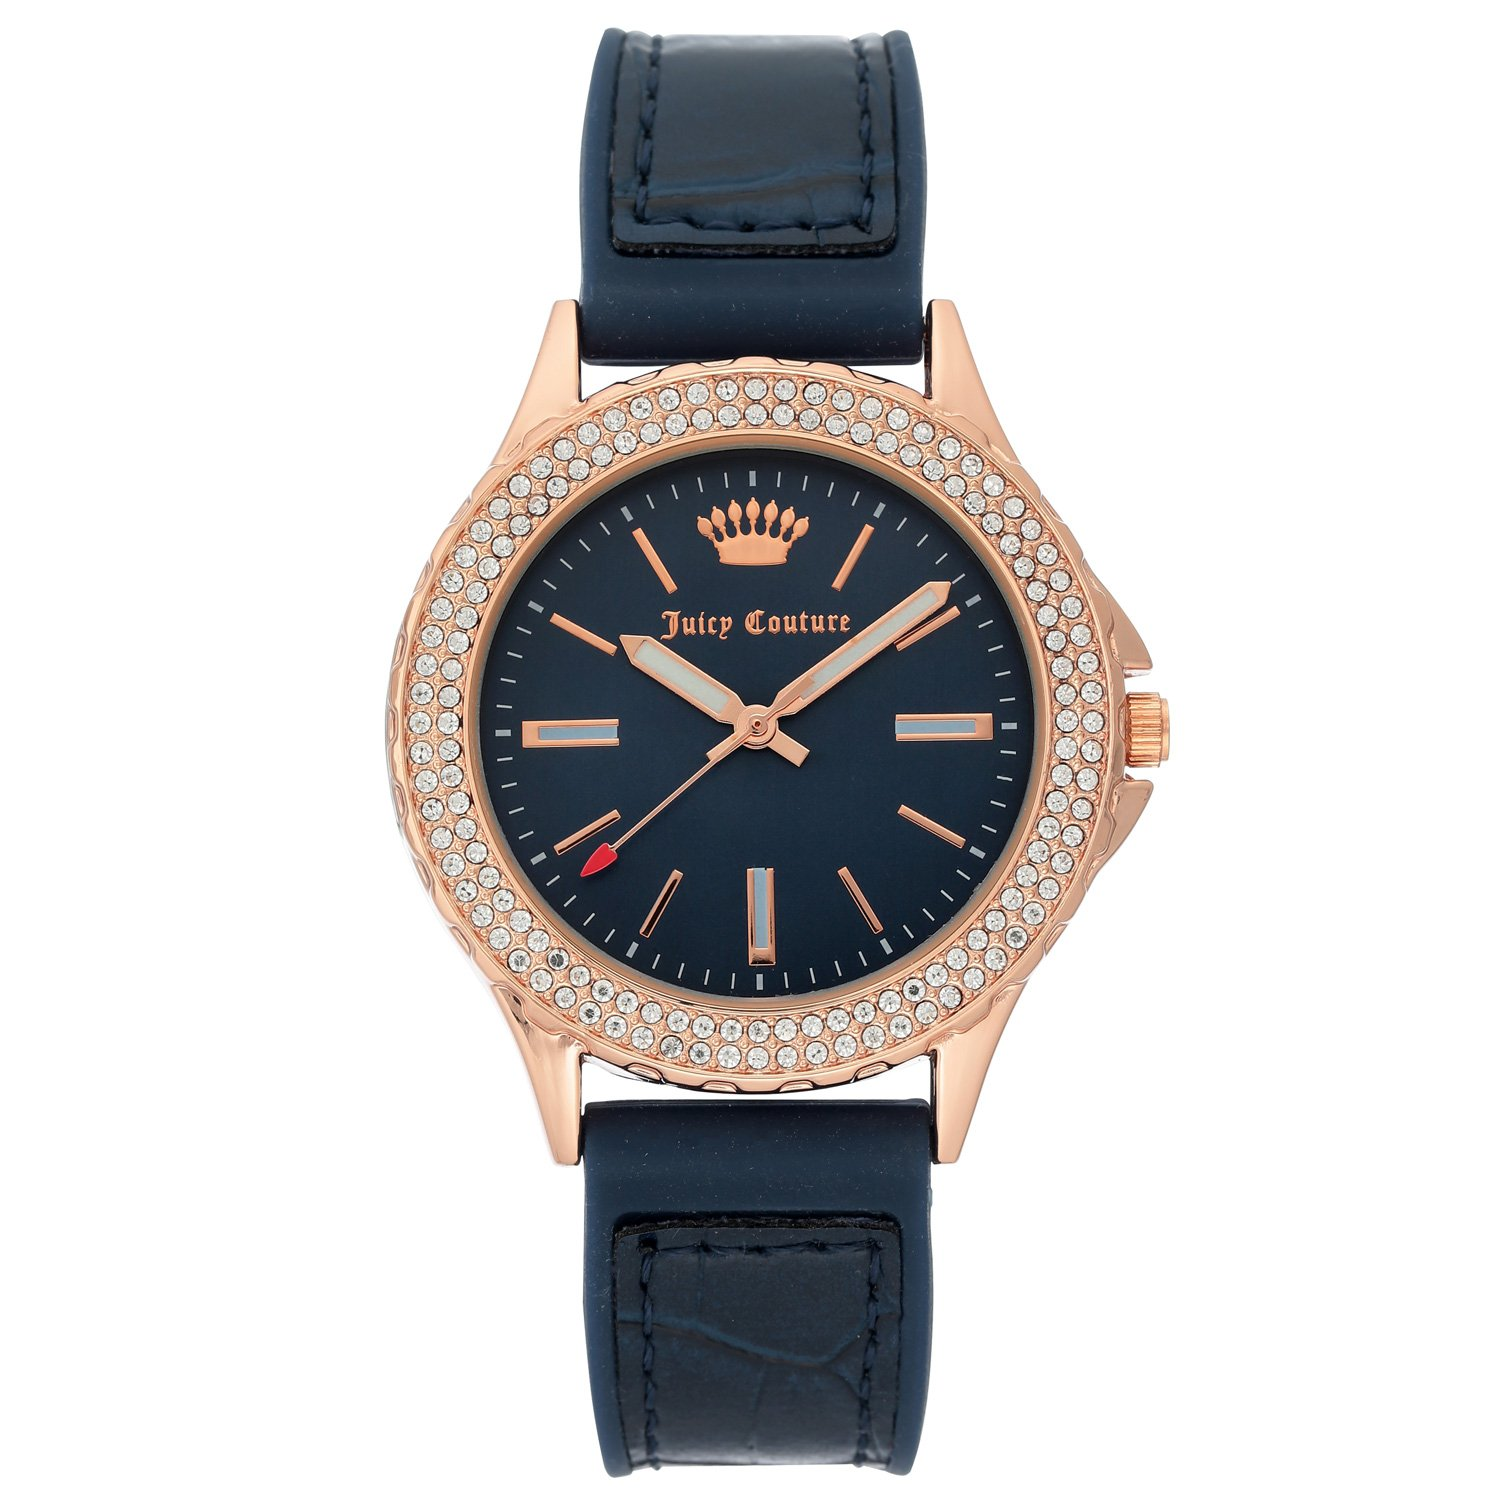 Juicy Couture Women's Watch Blue JC/1112RGNV